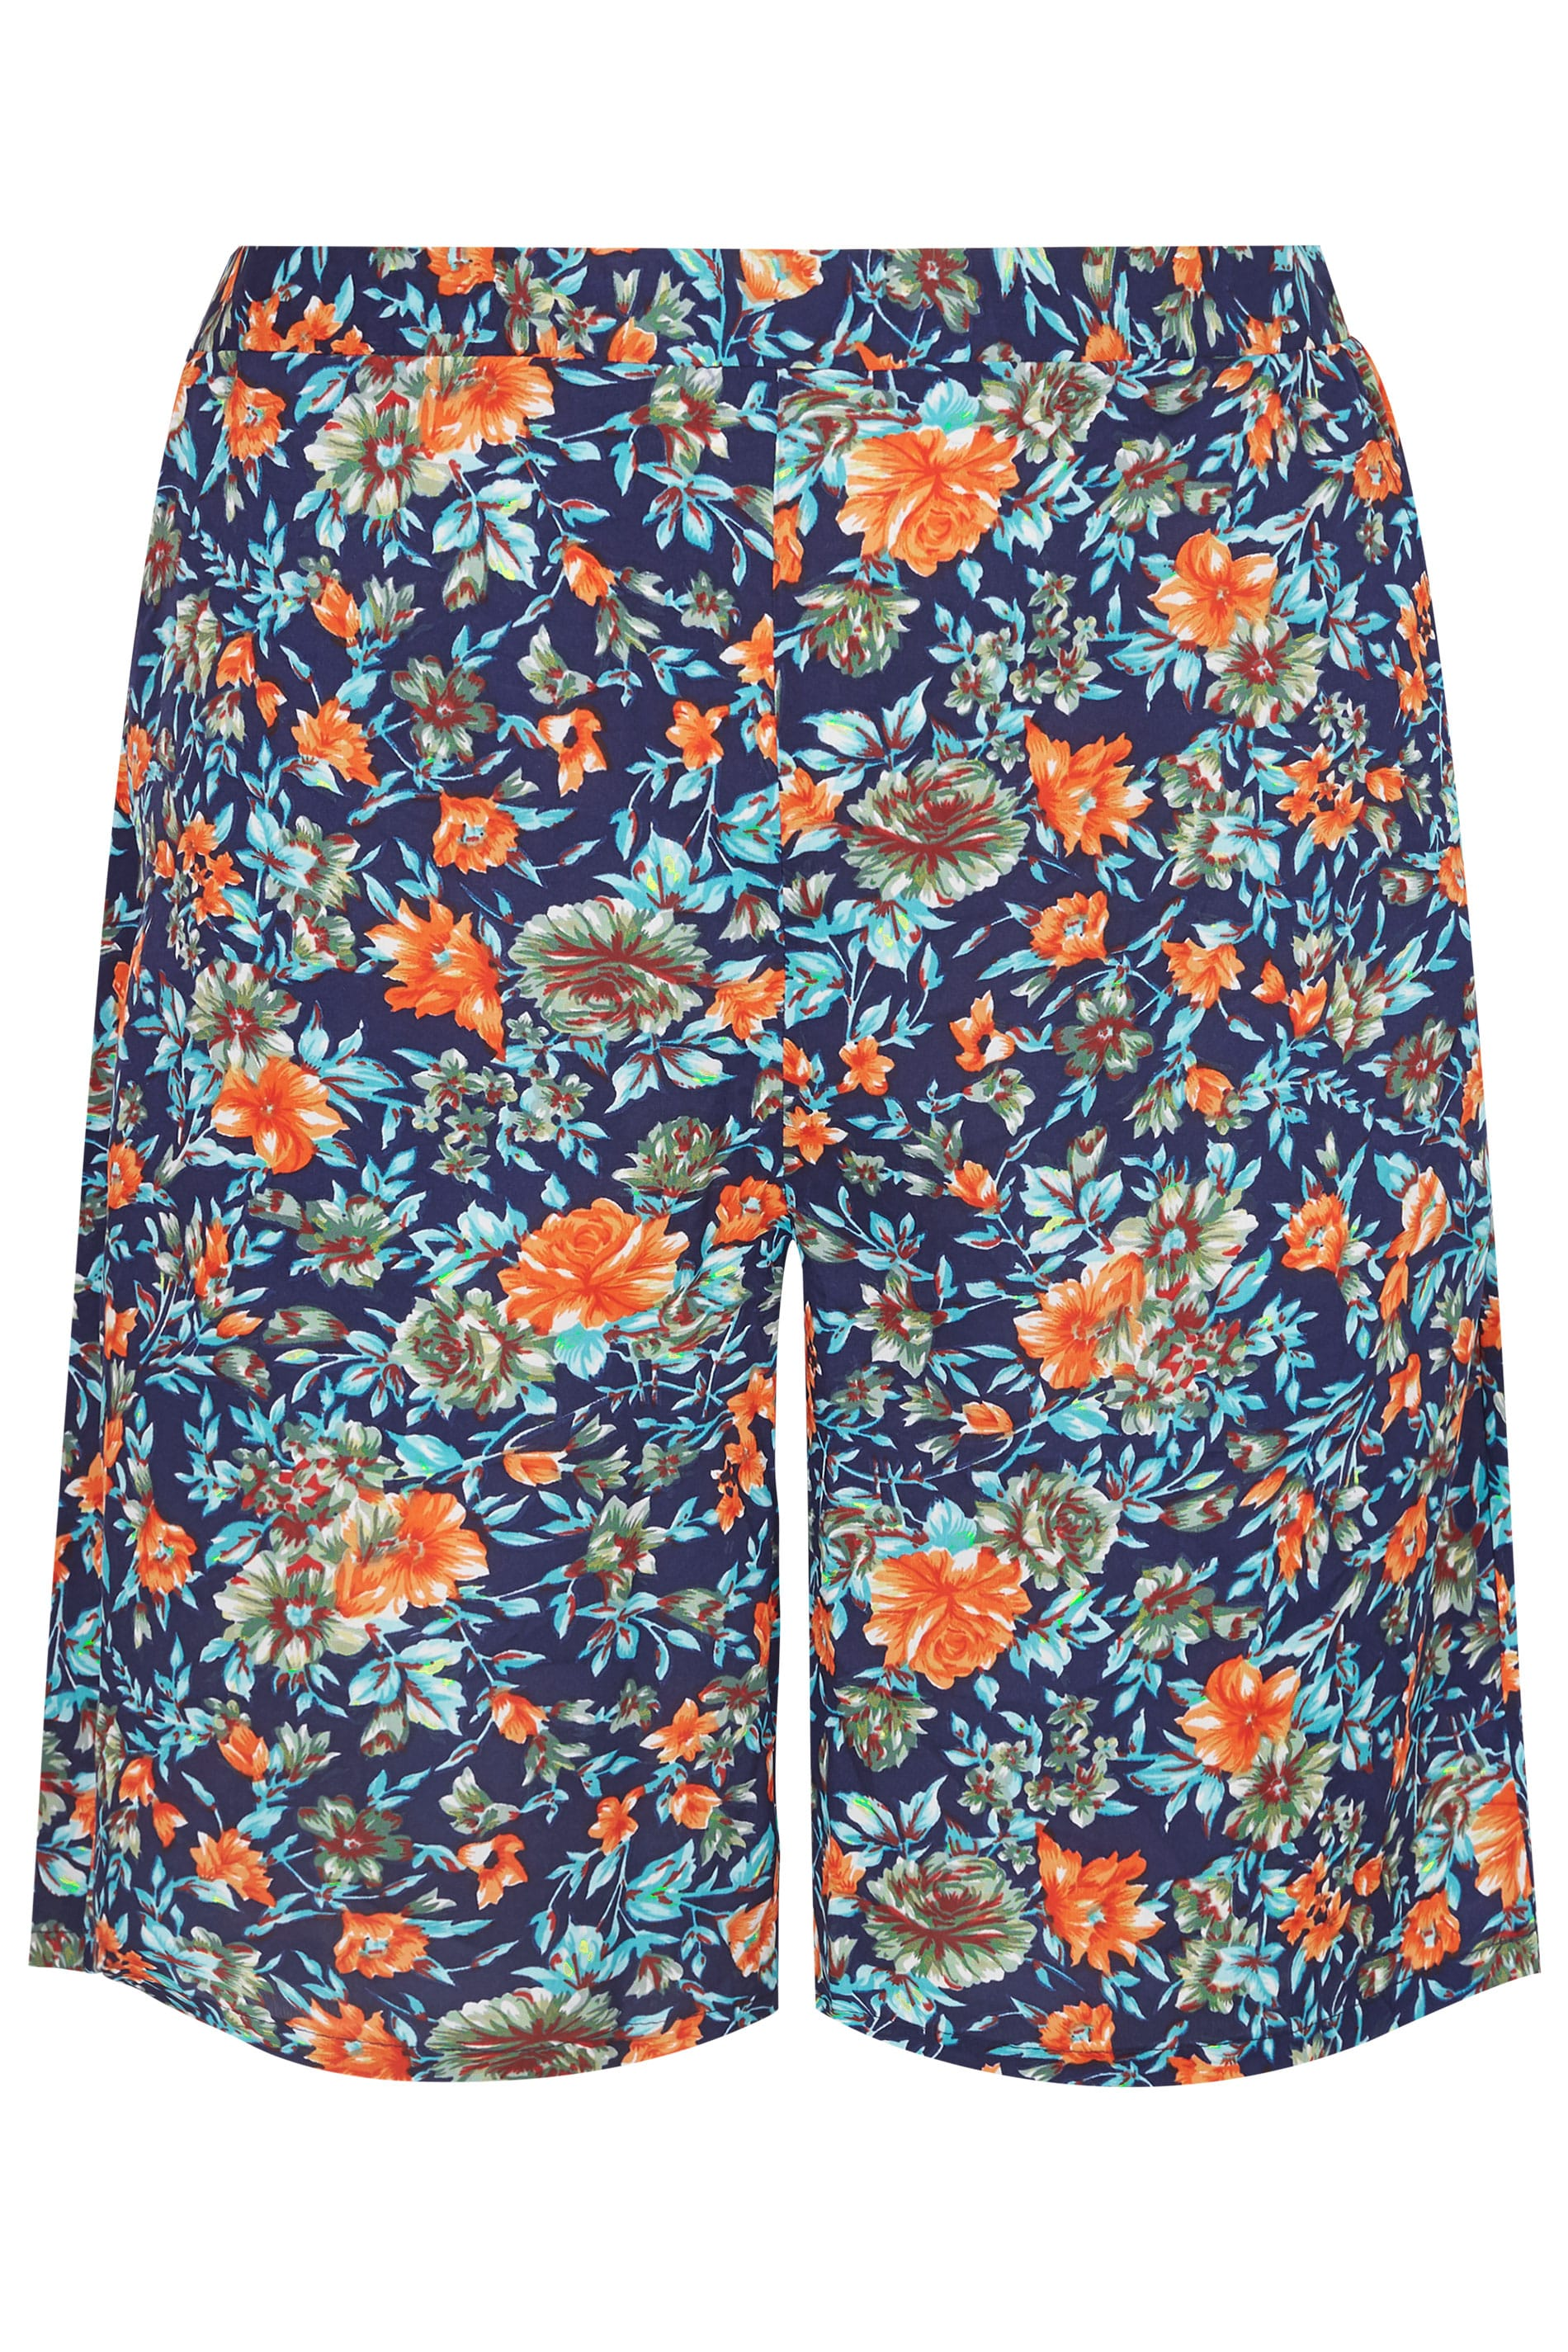 how to head a letter chiffon shorts mit blumenmuster in dunkelblau amp orange in 40372